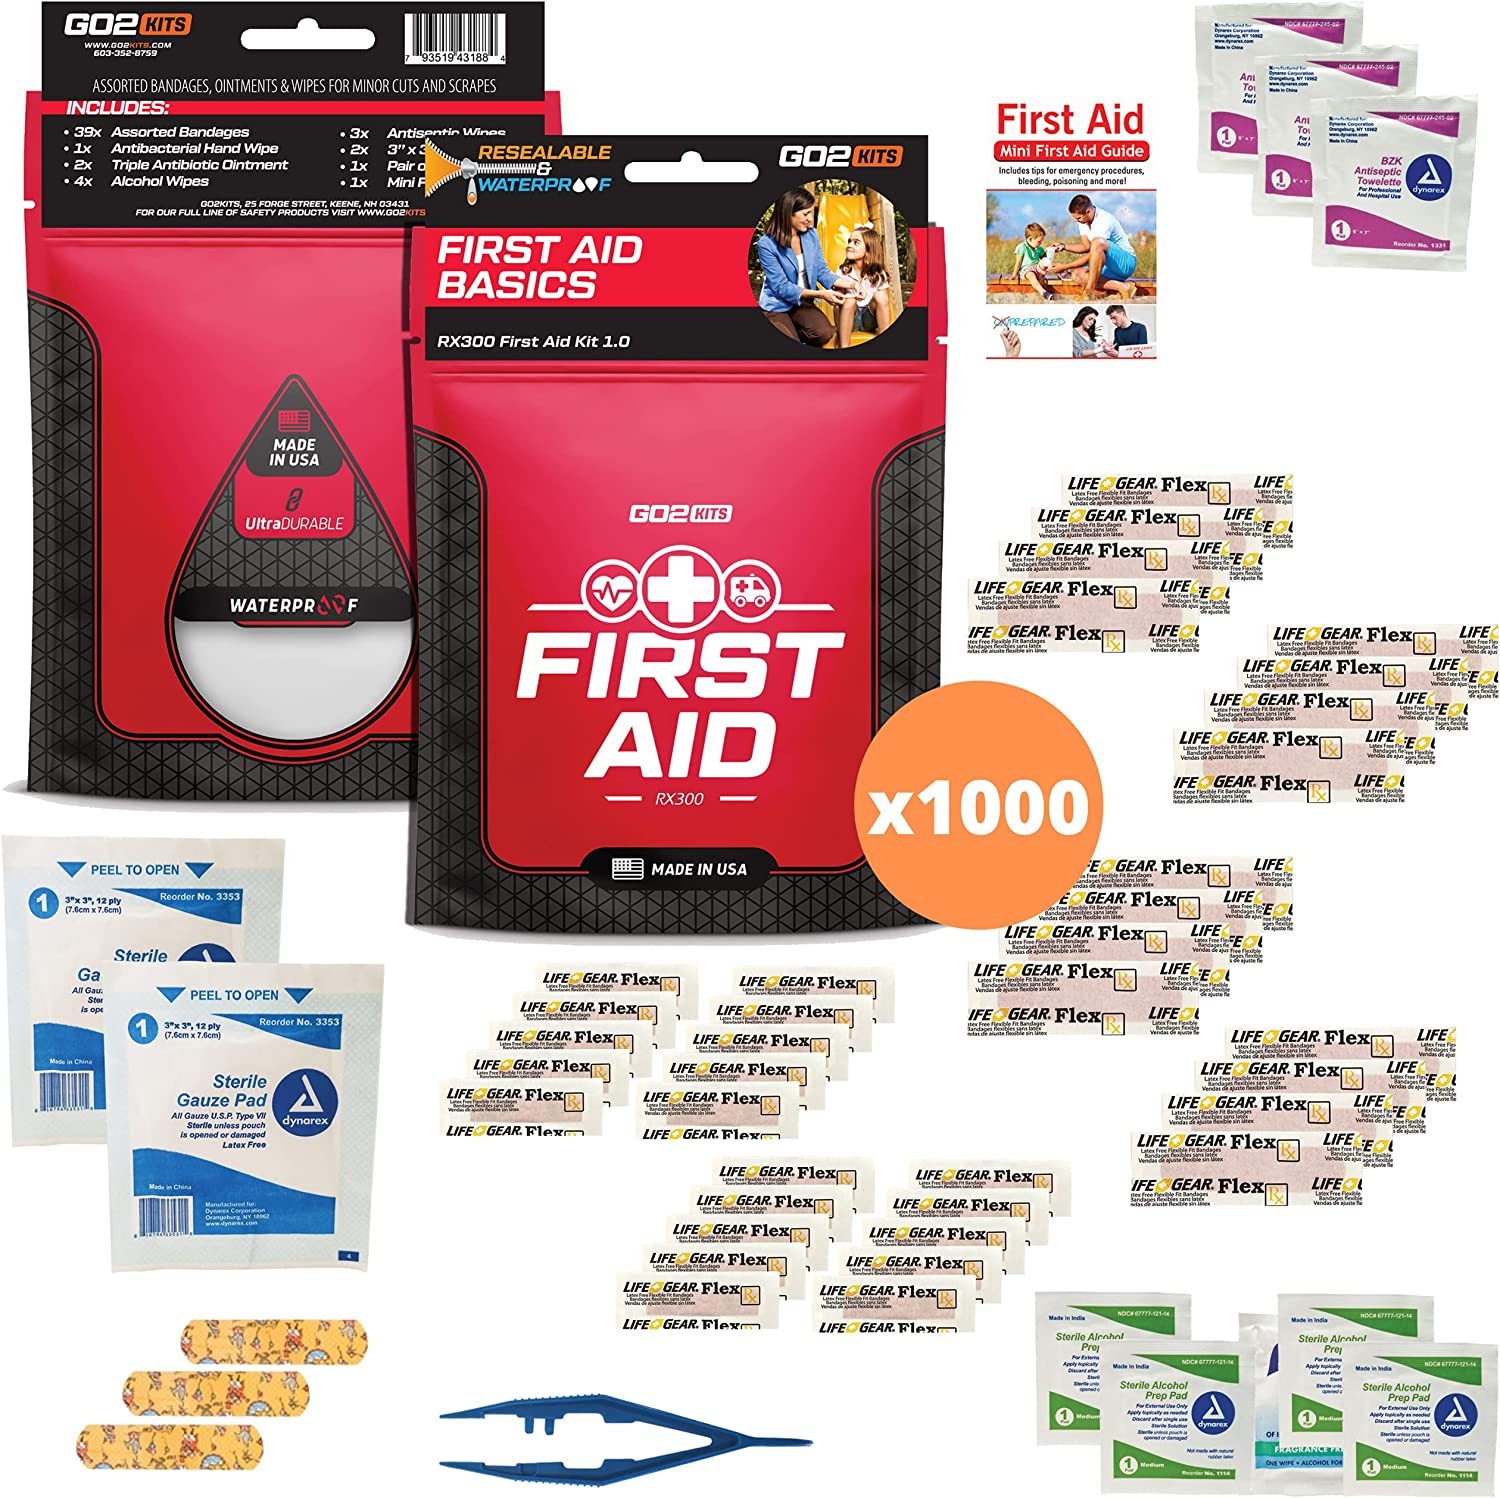 Go2Kits 34 Piece First Aid Cash special price Featuring Wipe Kit Time sale Assorted Bandages